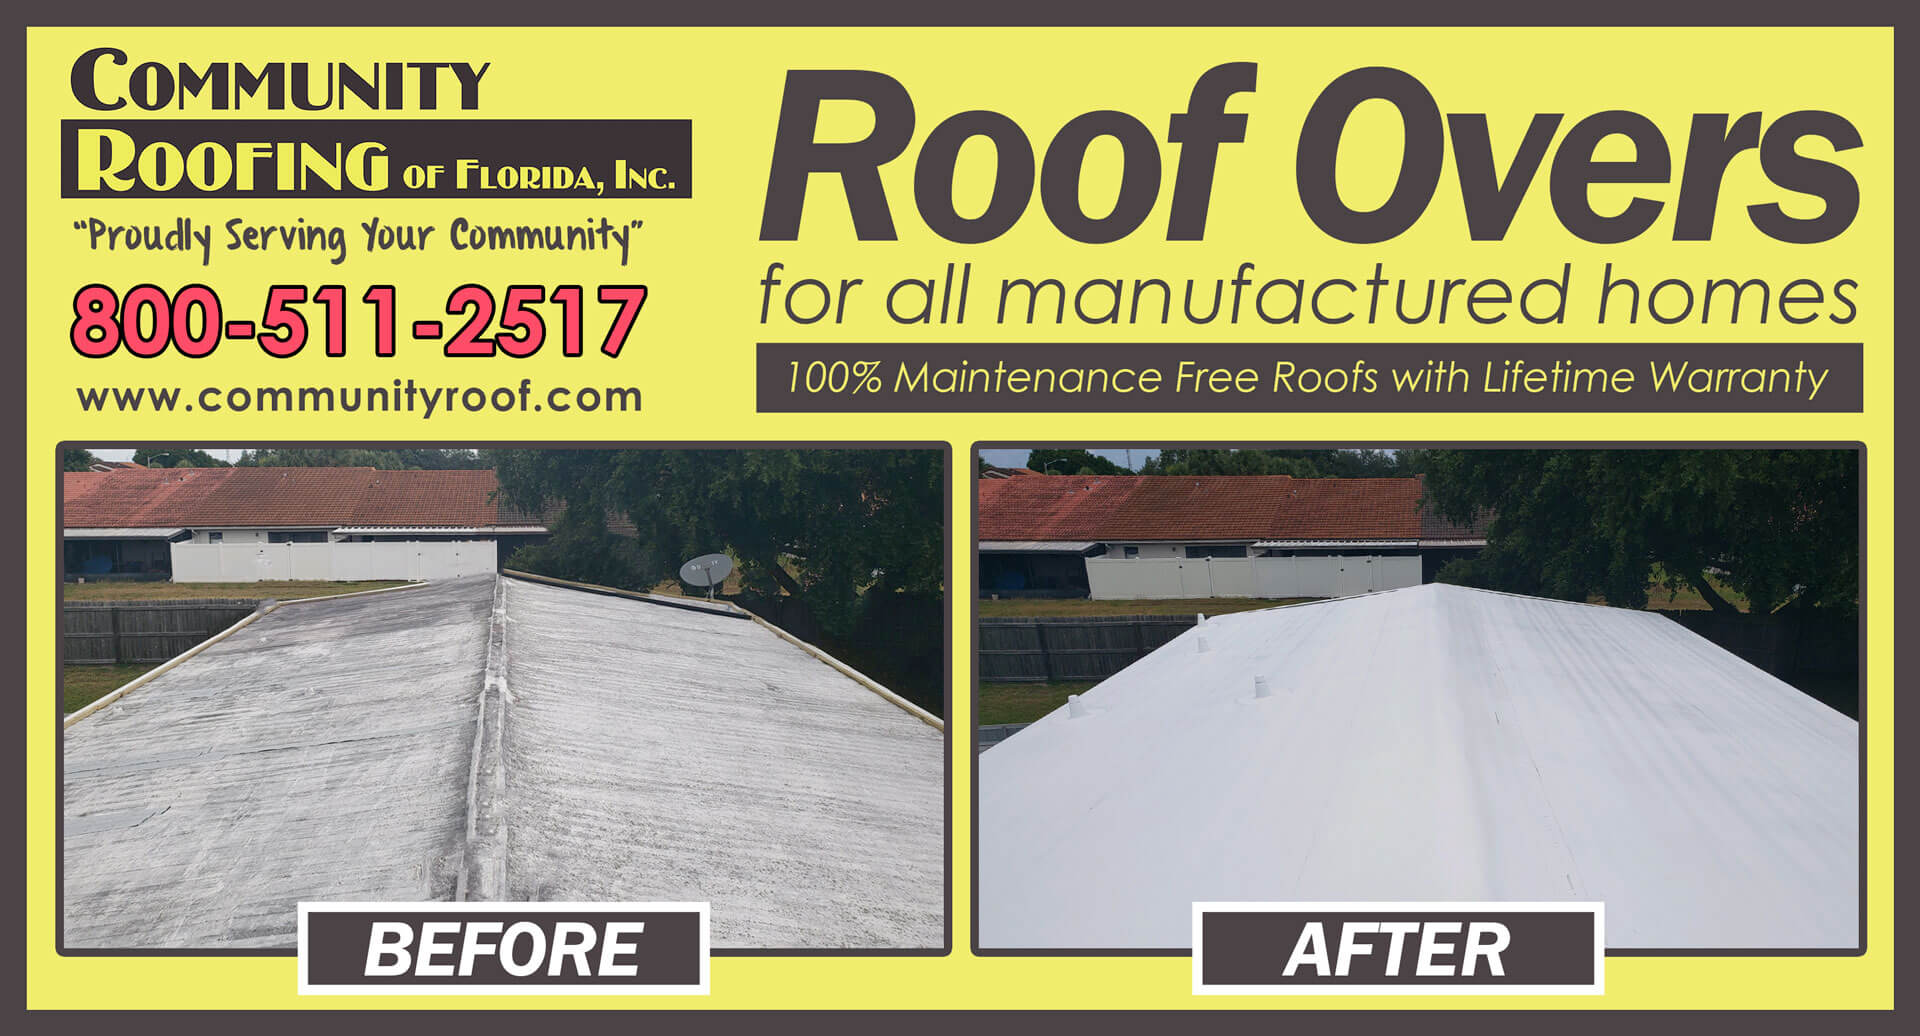 Mobile Home Roof Over Largo Florida